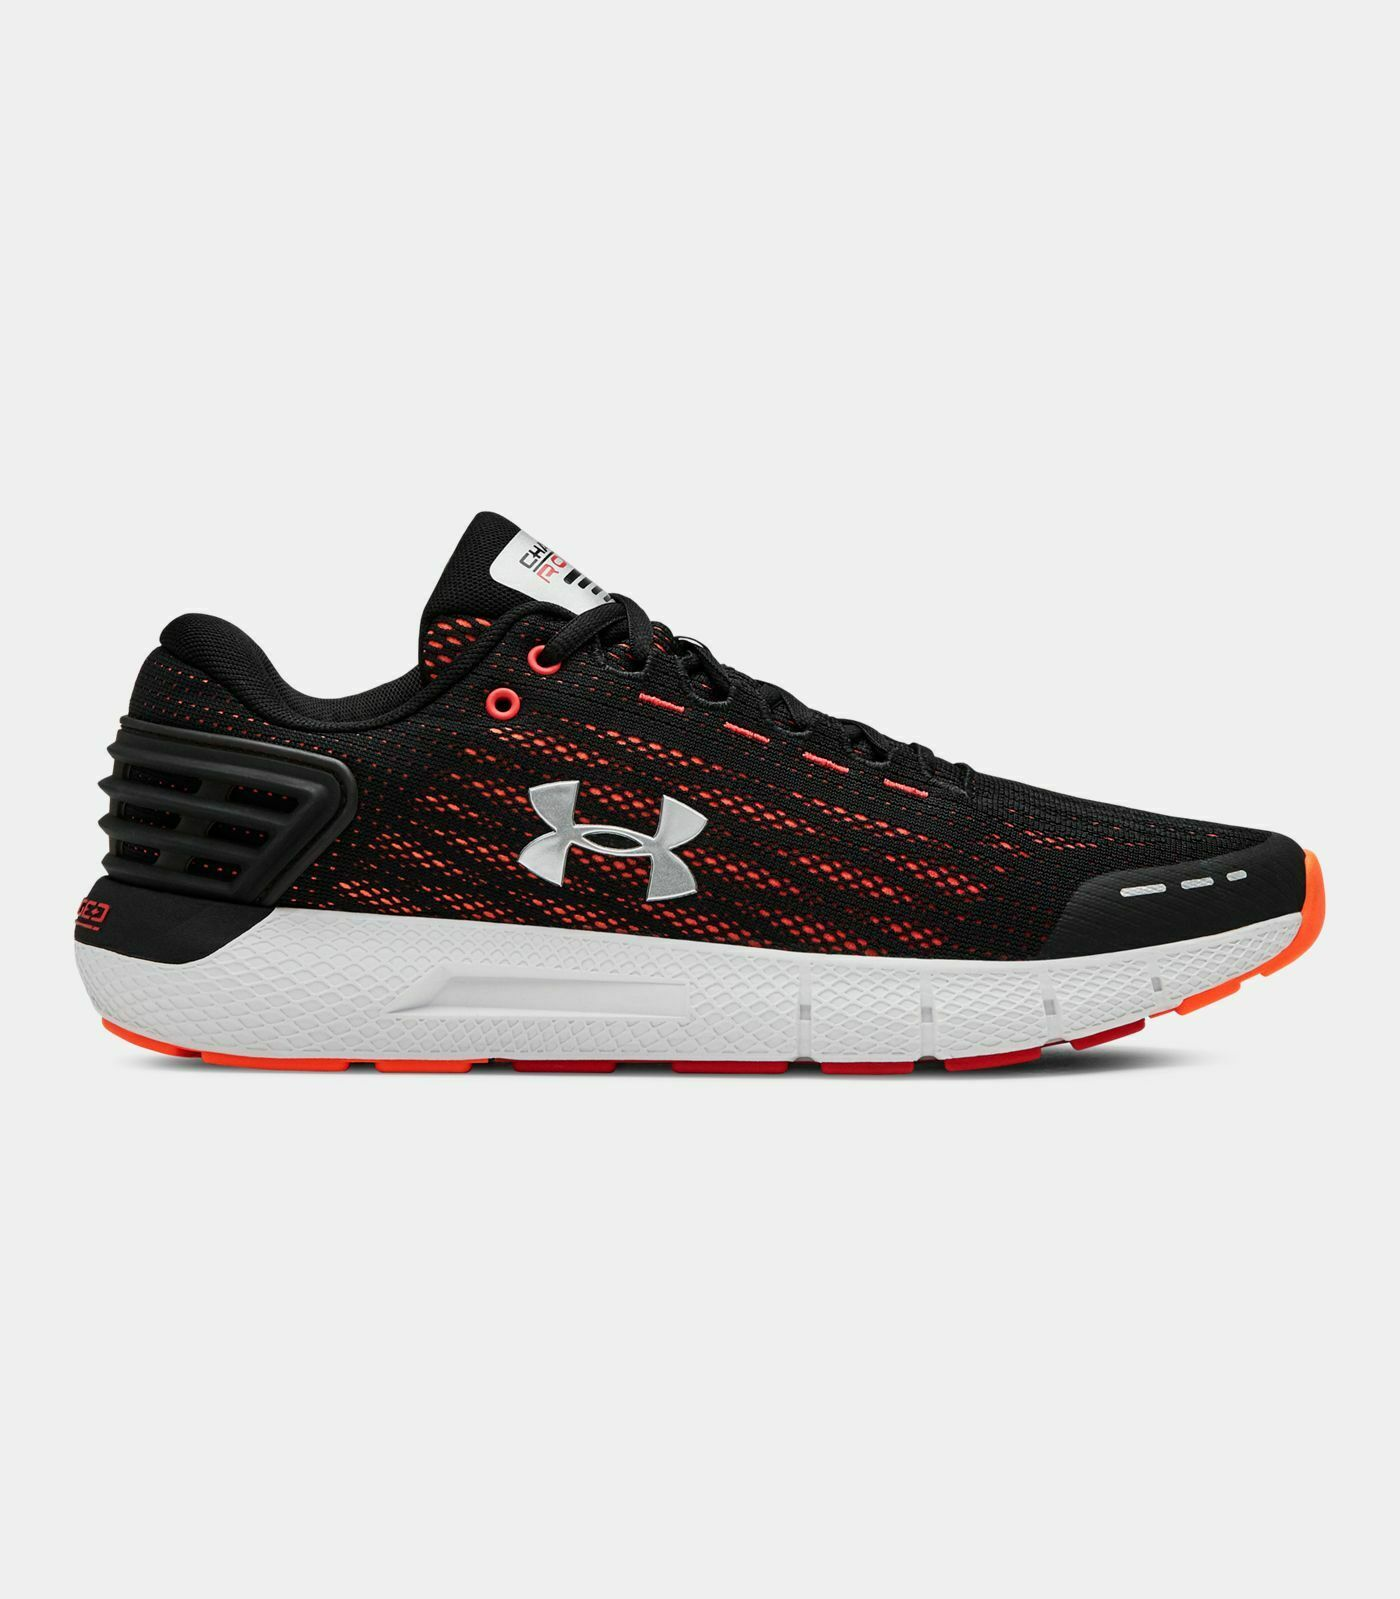 Under Armour Uomo Uomo Uomo scarpe CHARGED ROGUE TRAINING scarpe 3021225 NEW dc5204